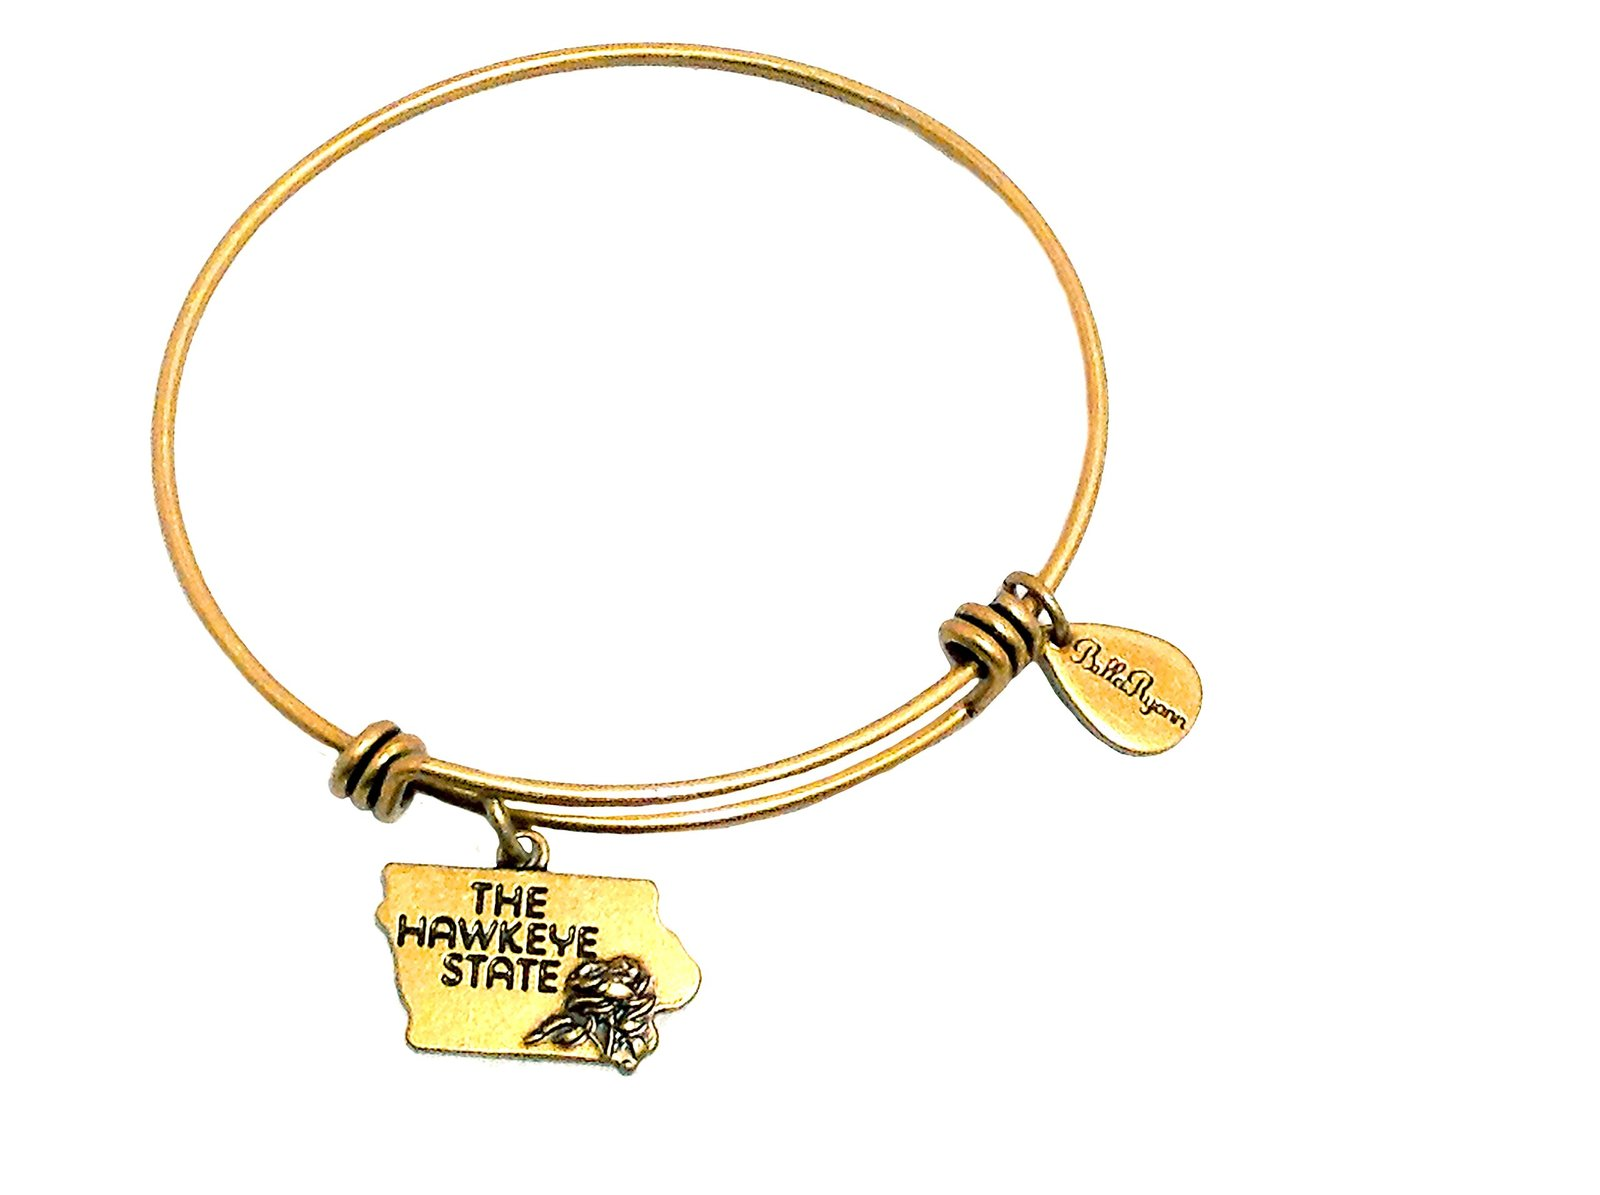 State of Iowa Charm Bangle Bracelet